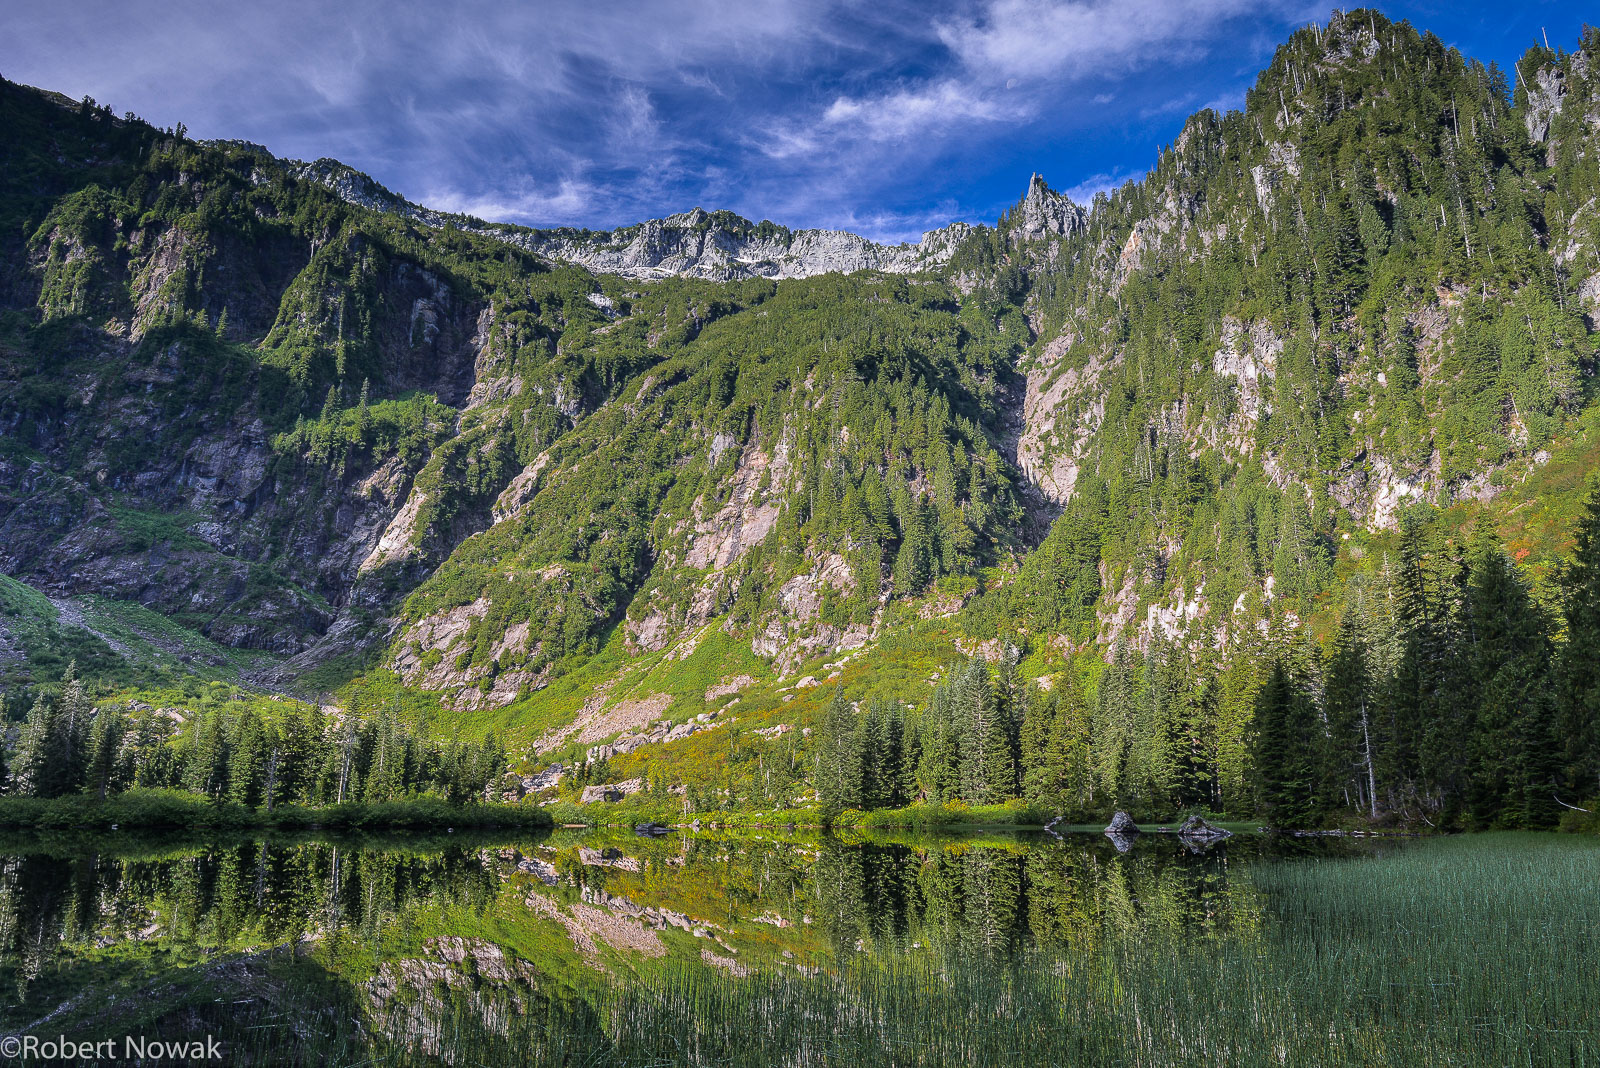 Summer morning at Heather Lake, located in a subalpine basin below Mount Pilchuck.